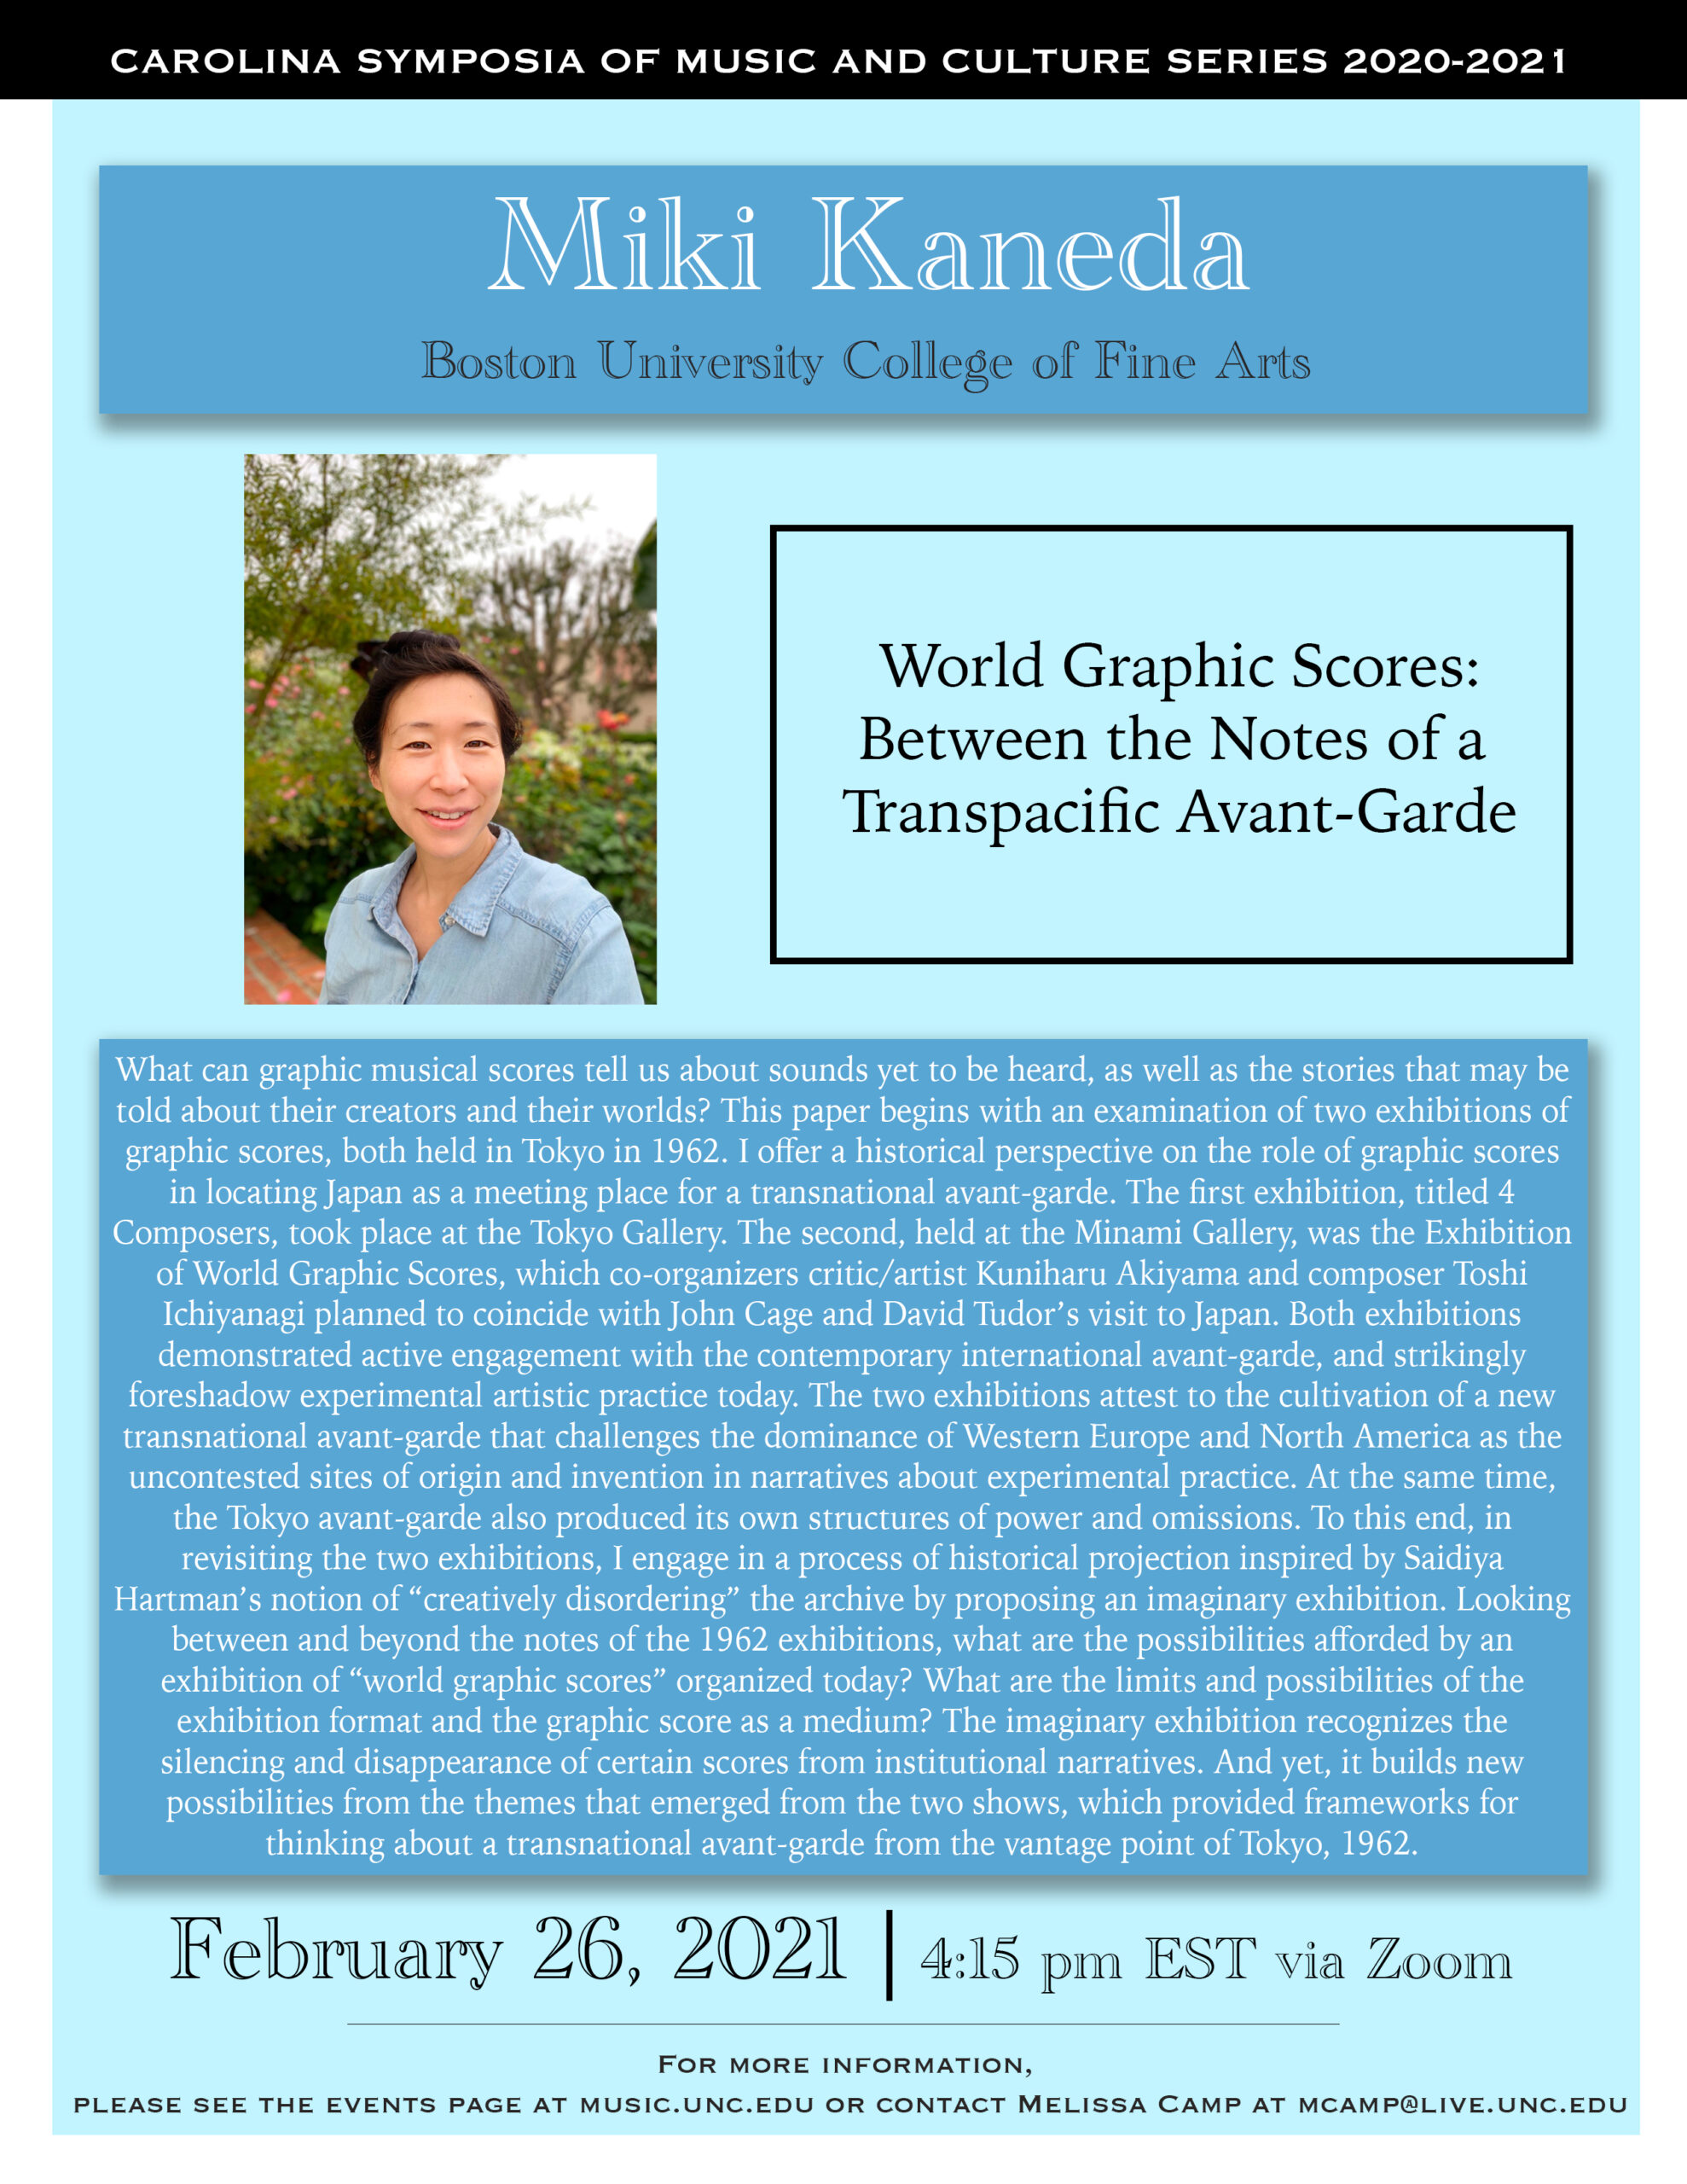 Kaneda's Lecture poster image. All text on webpage.